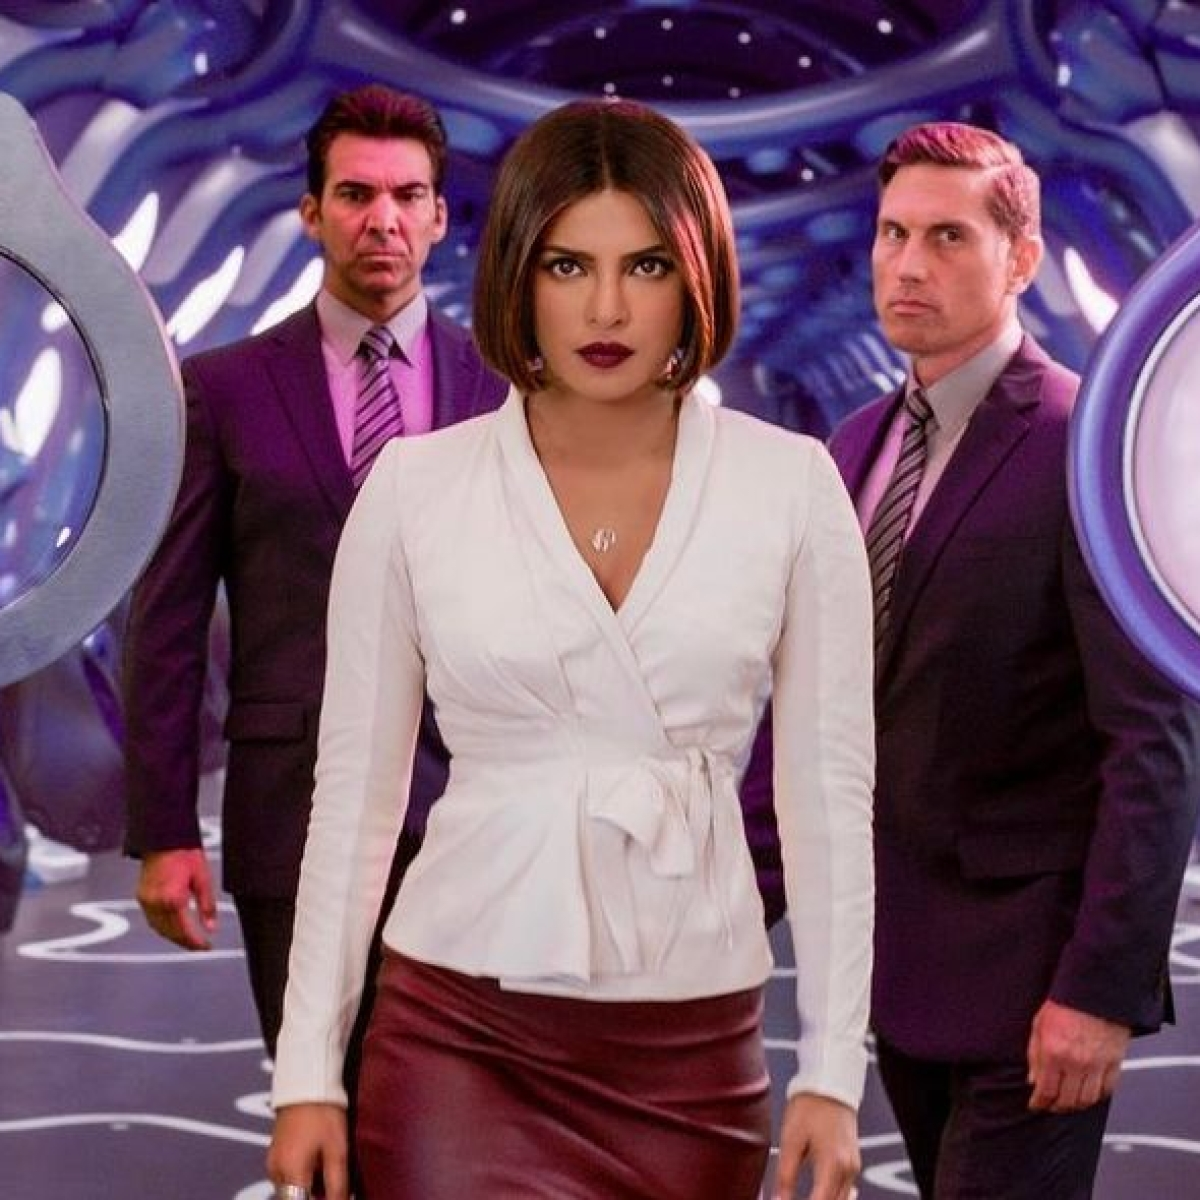 Priyanka Chopra announces 'We Can Be Heroes' sequel in the works at Netflix